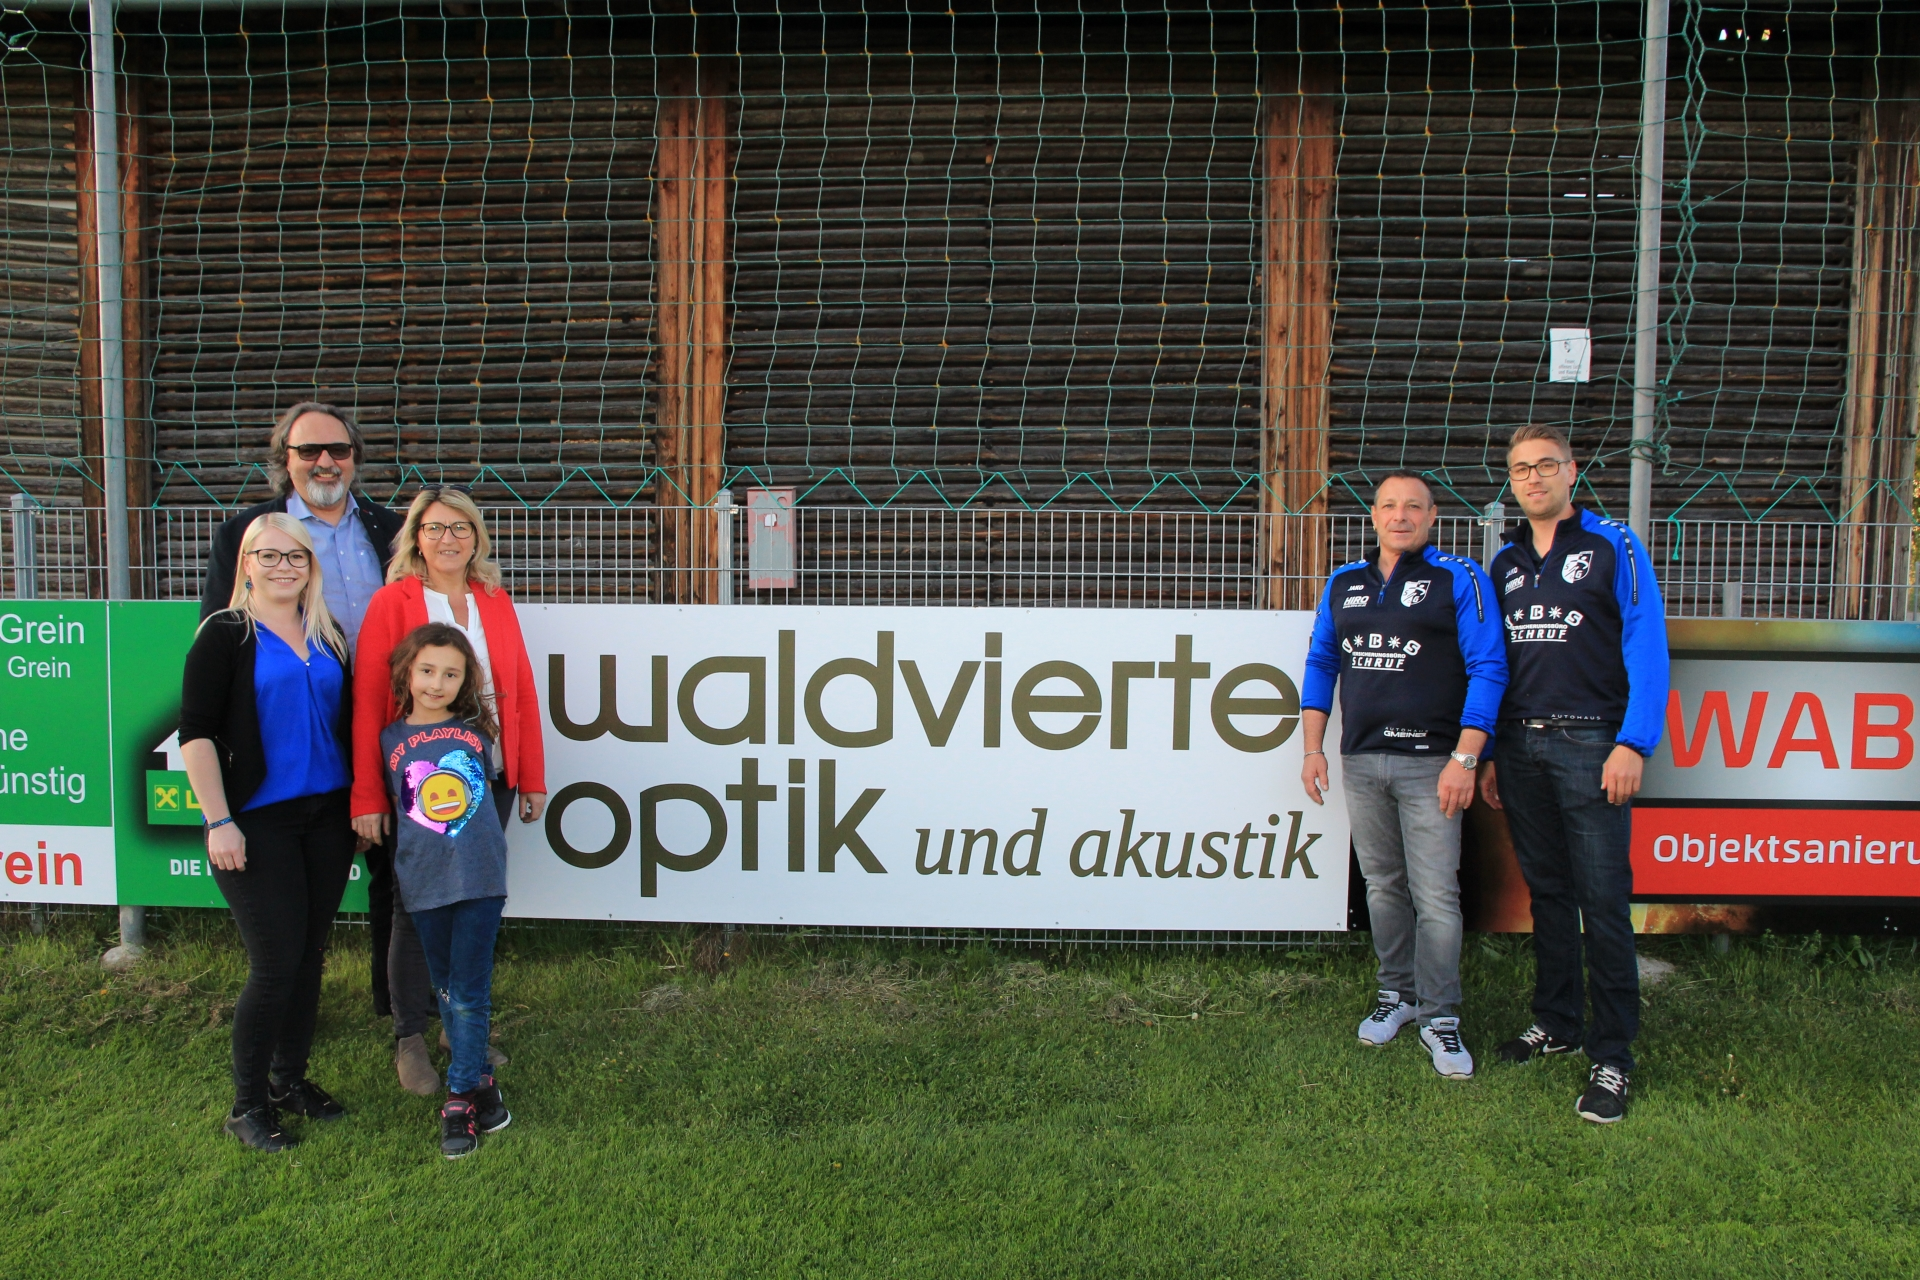 Waldviertler_Optik